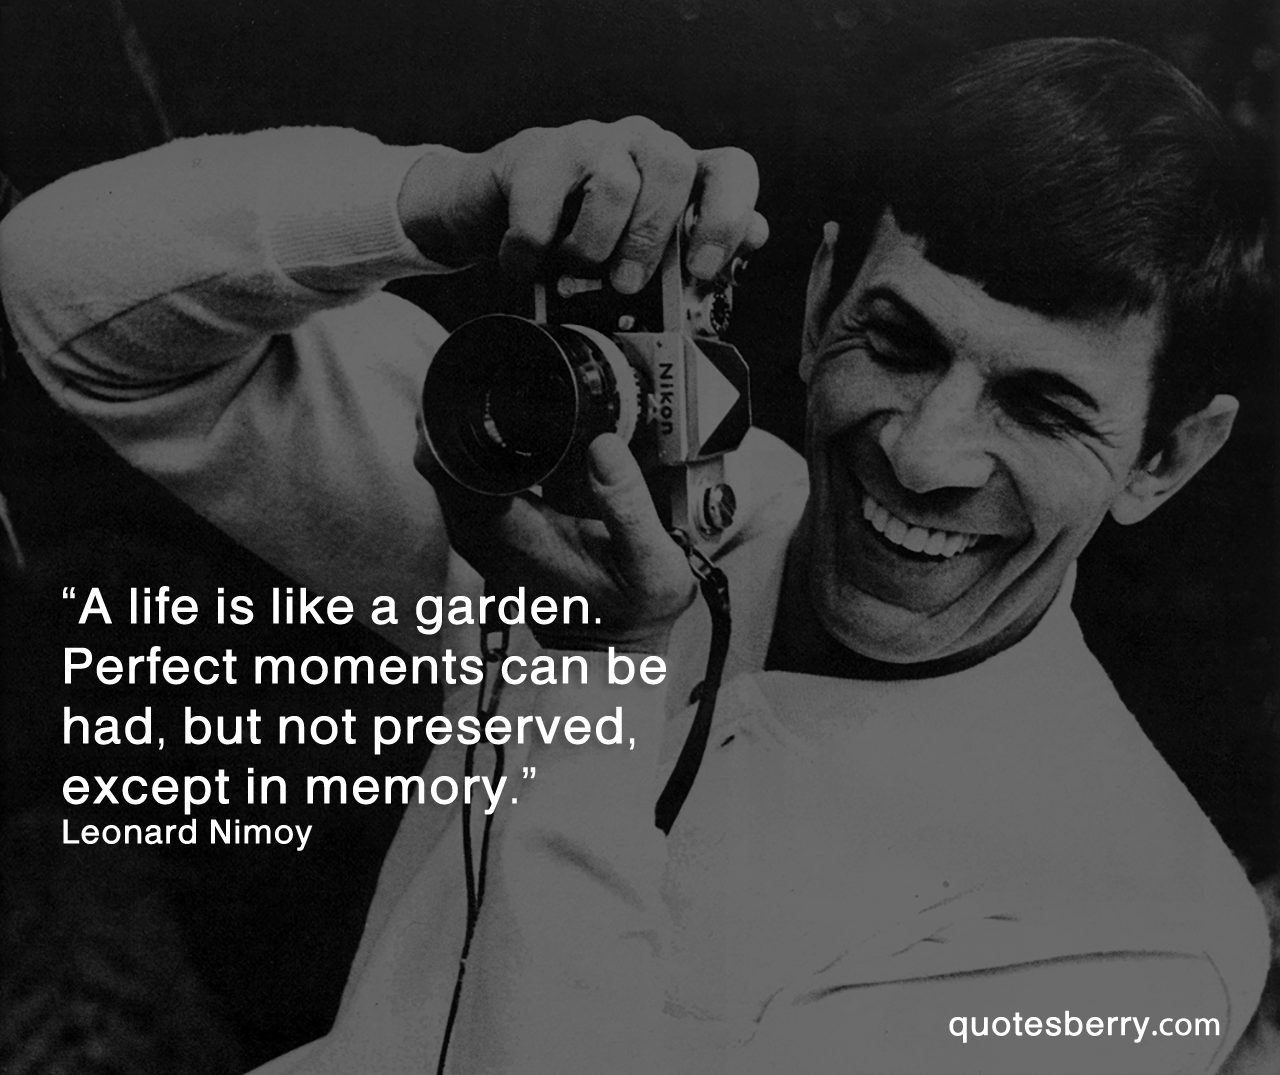 Leonard Nimoy Quotes A Life Is Like A Gardenperfect Moments Can Be Quotesberry